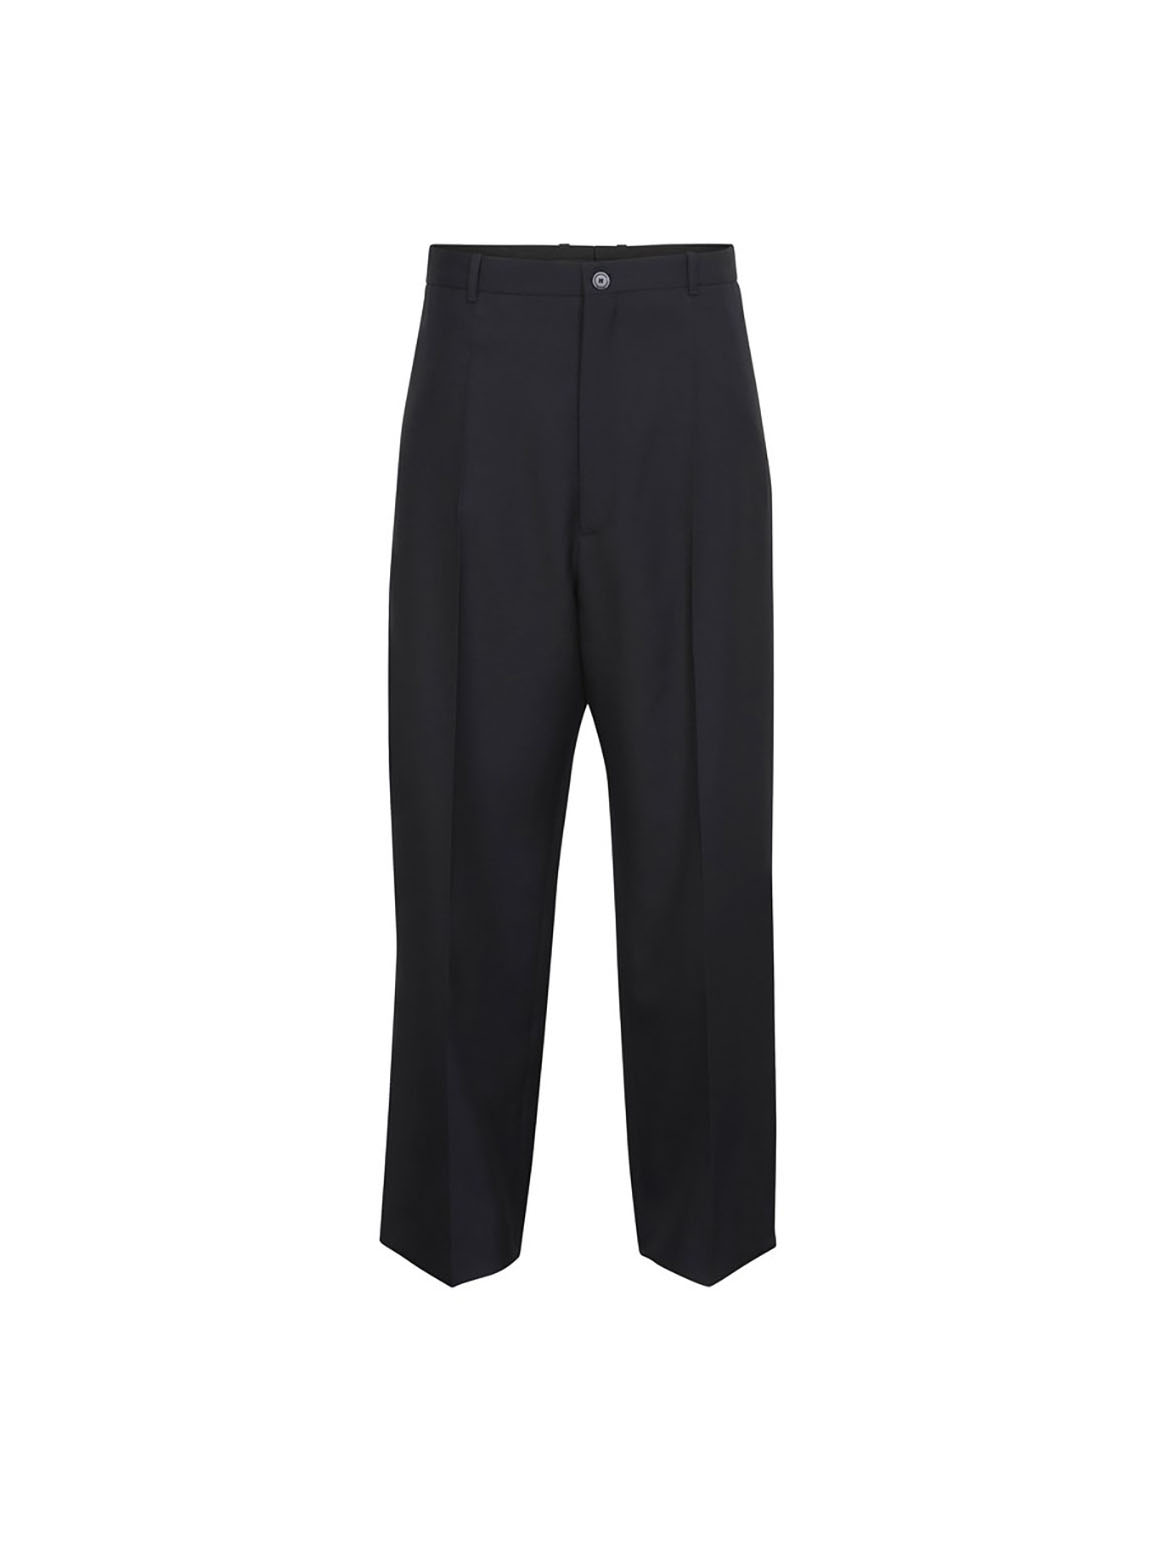 Baggy tailored pants